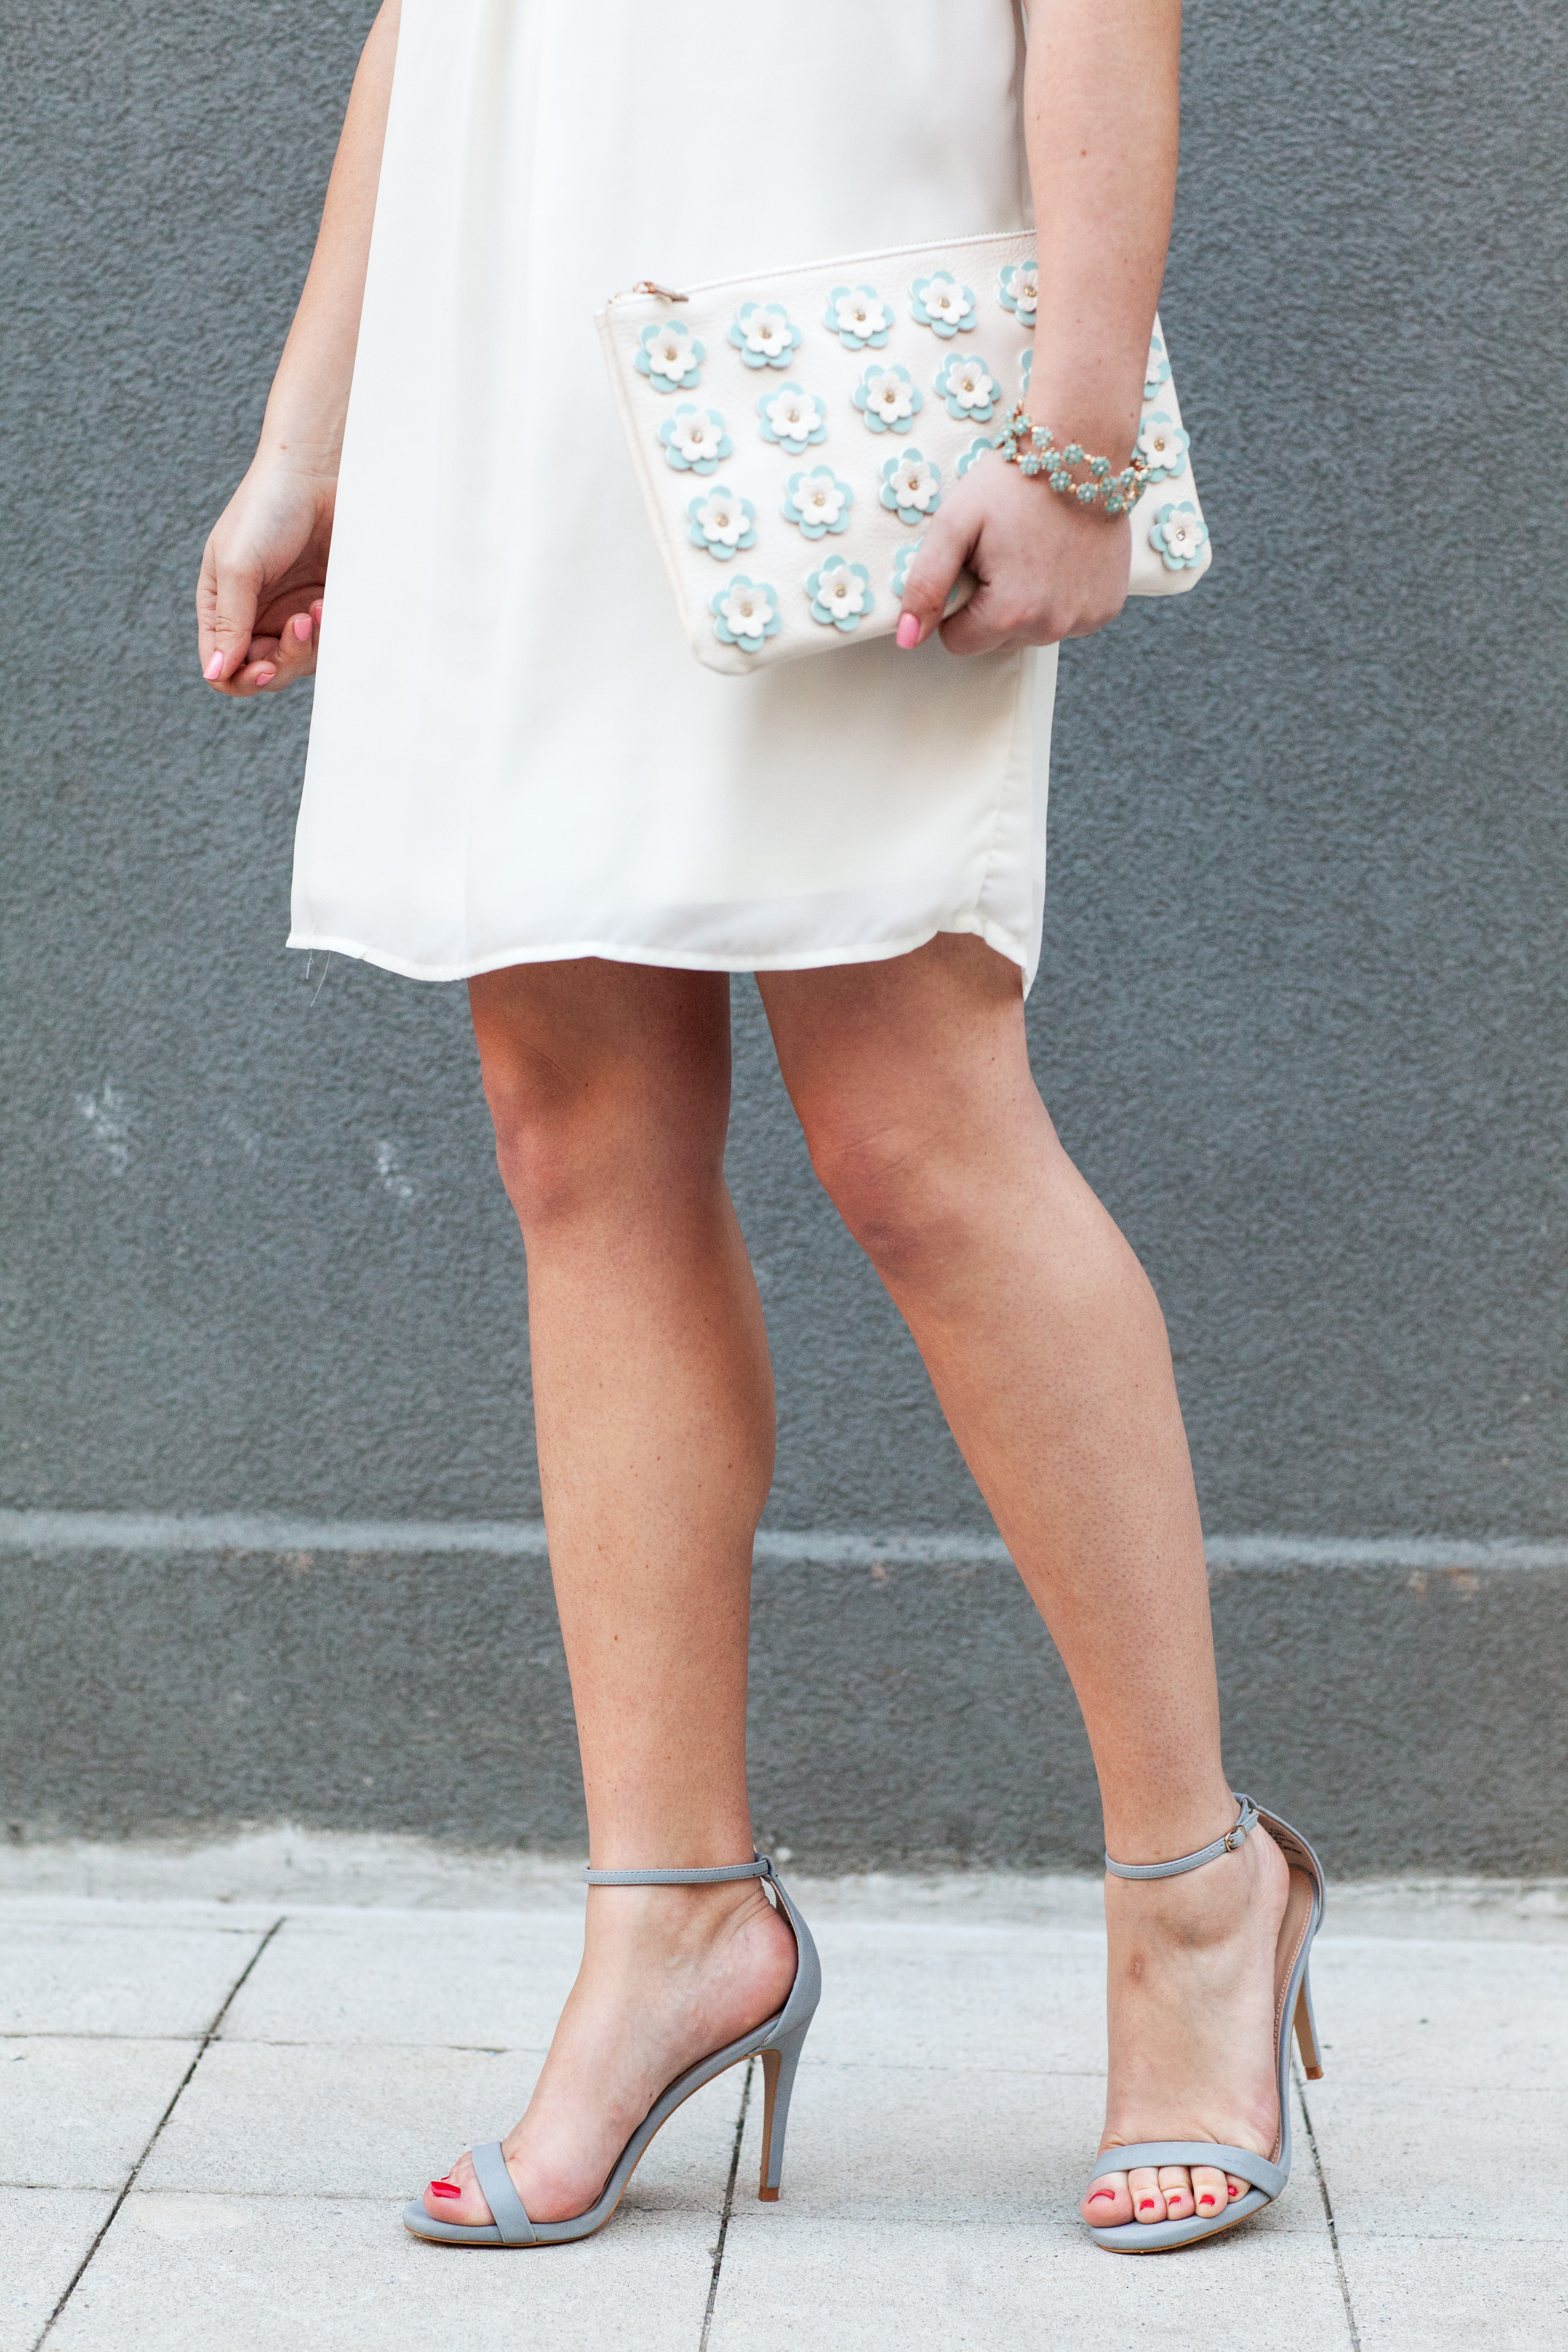 White Dress With Blue Heels